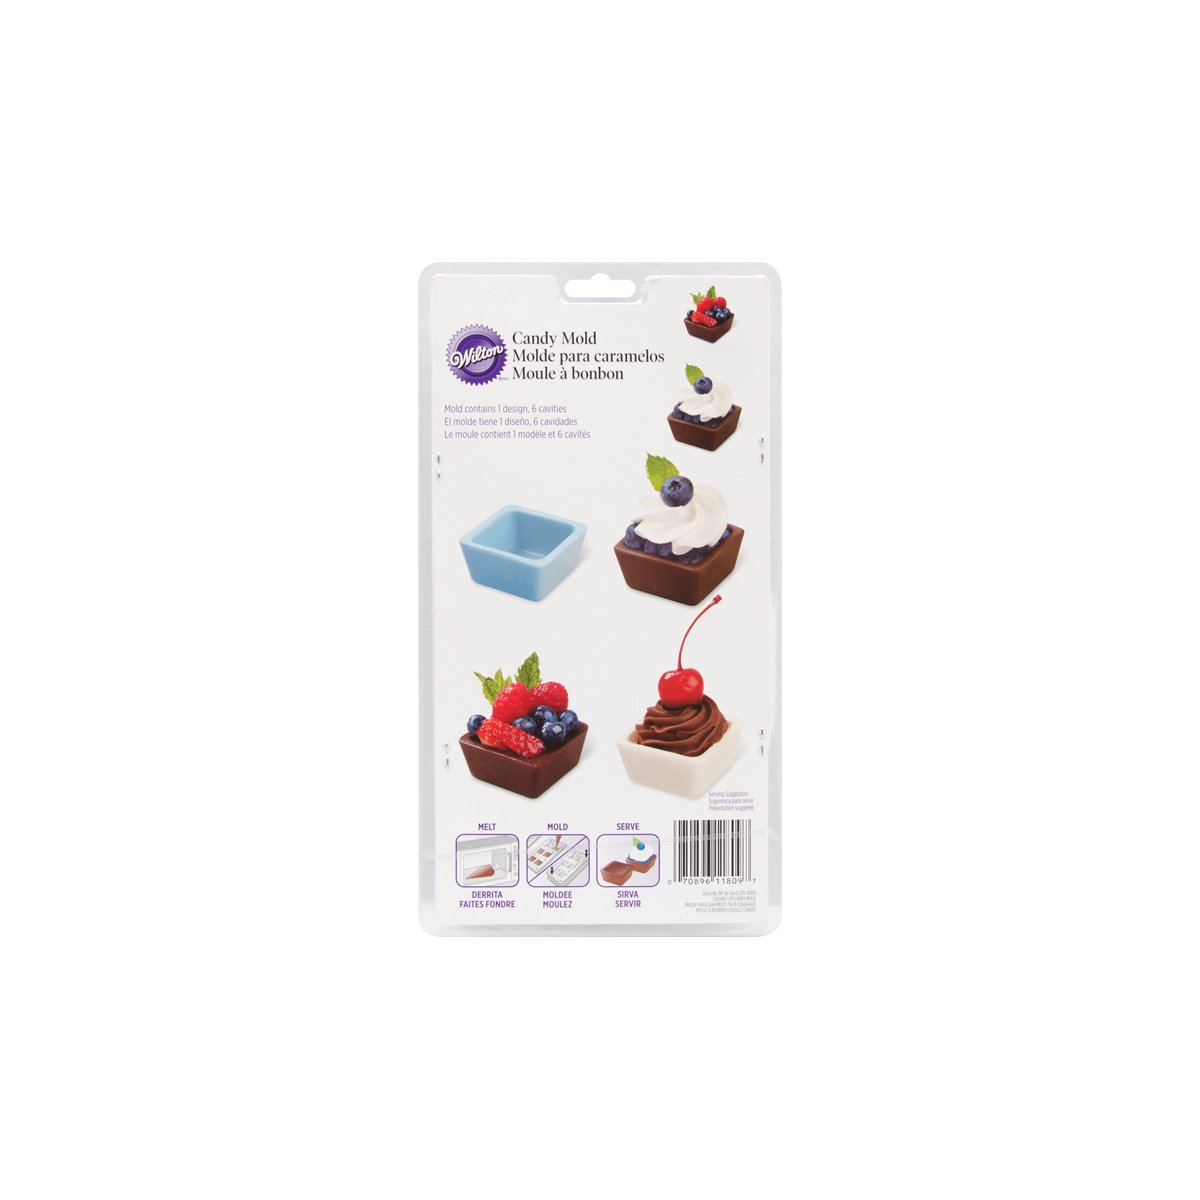 Amazon.com: Wilton 2115-0009 Square Cup Candy Mold: Candy Making Molds: Kitchen & Dining